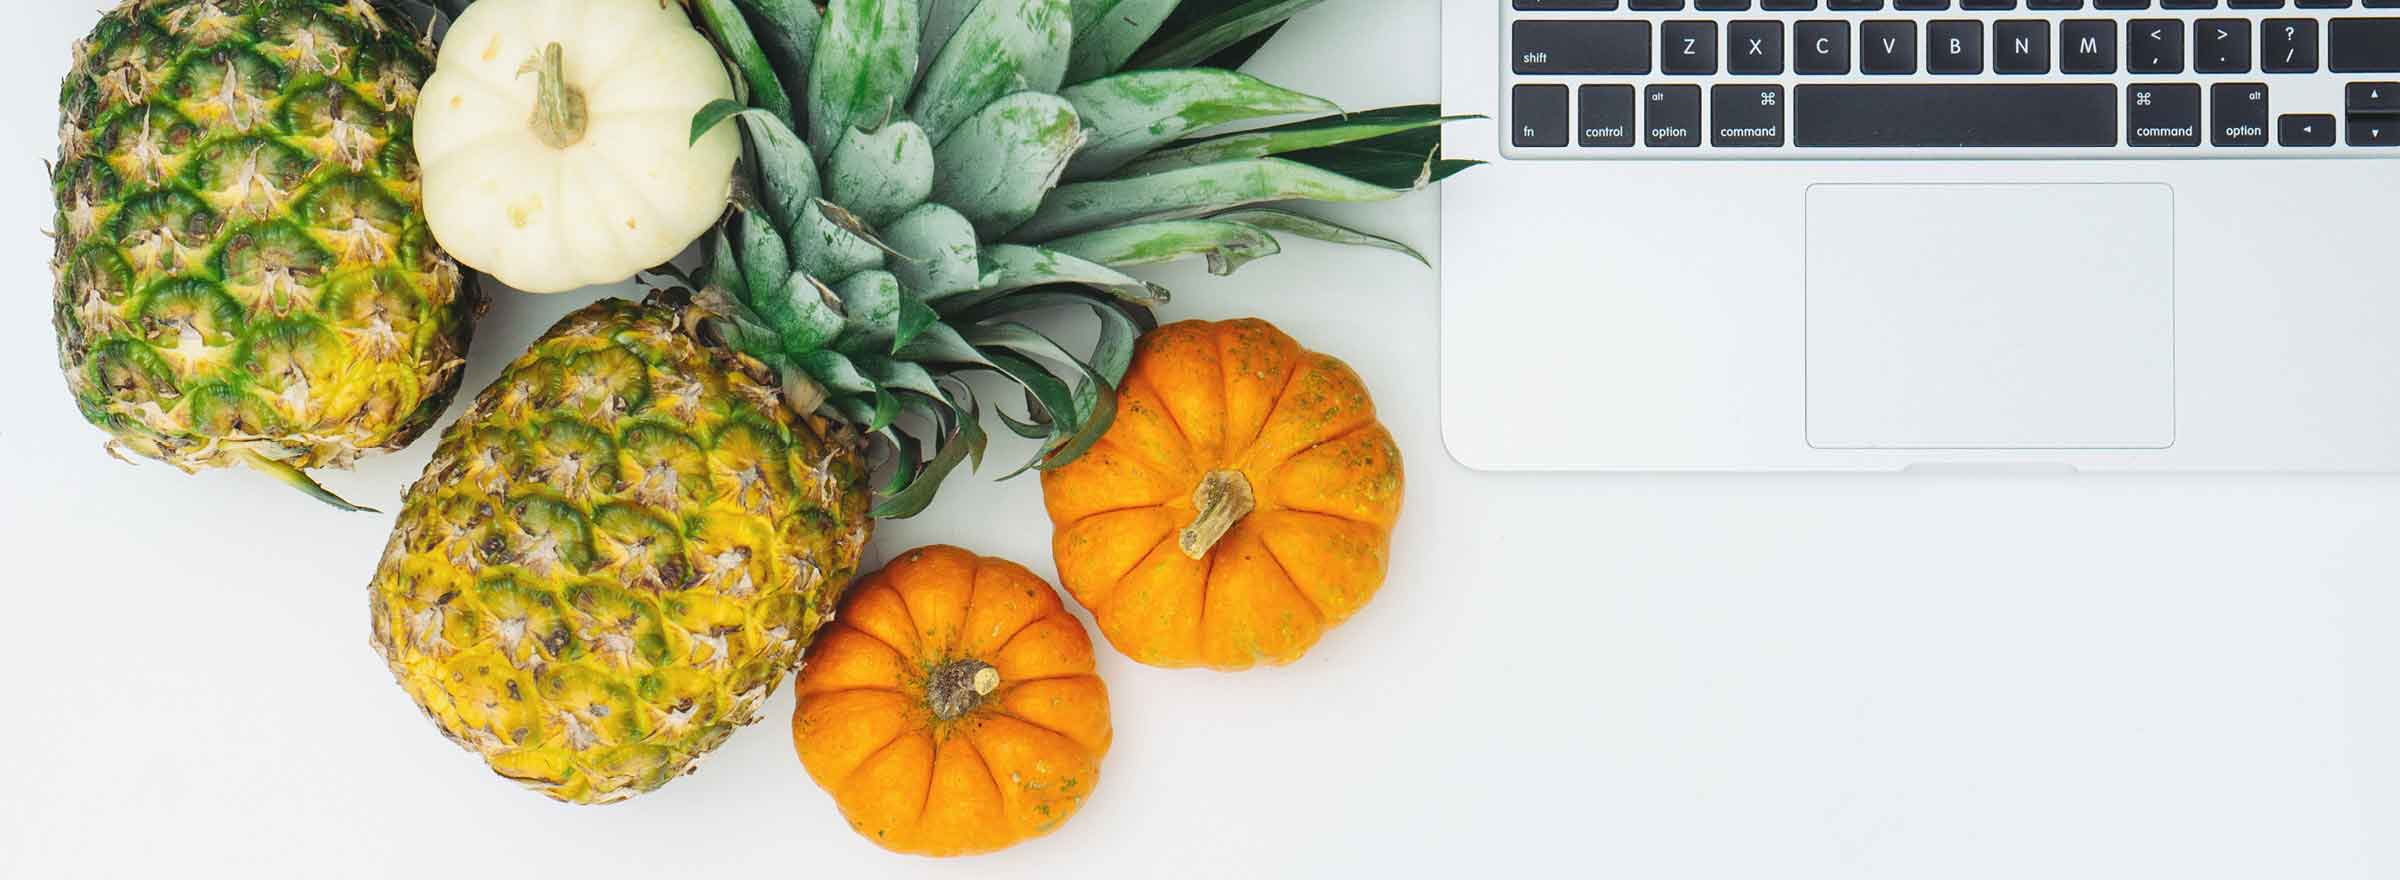 pineapples and pumpkins next to a laptop keyboard representing how Symantec helps nonprofits promote healthy eating